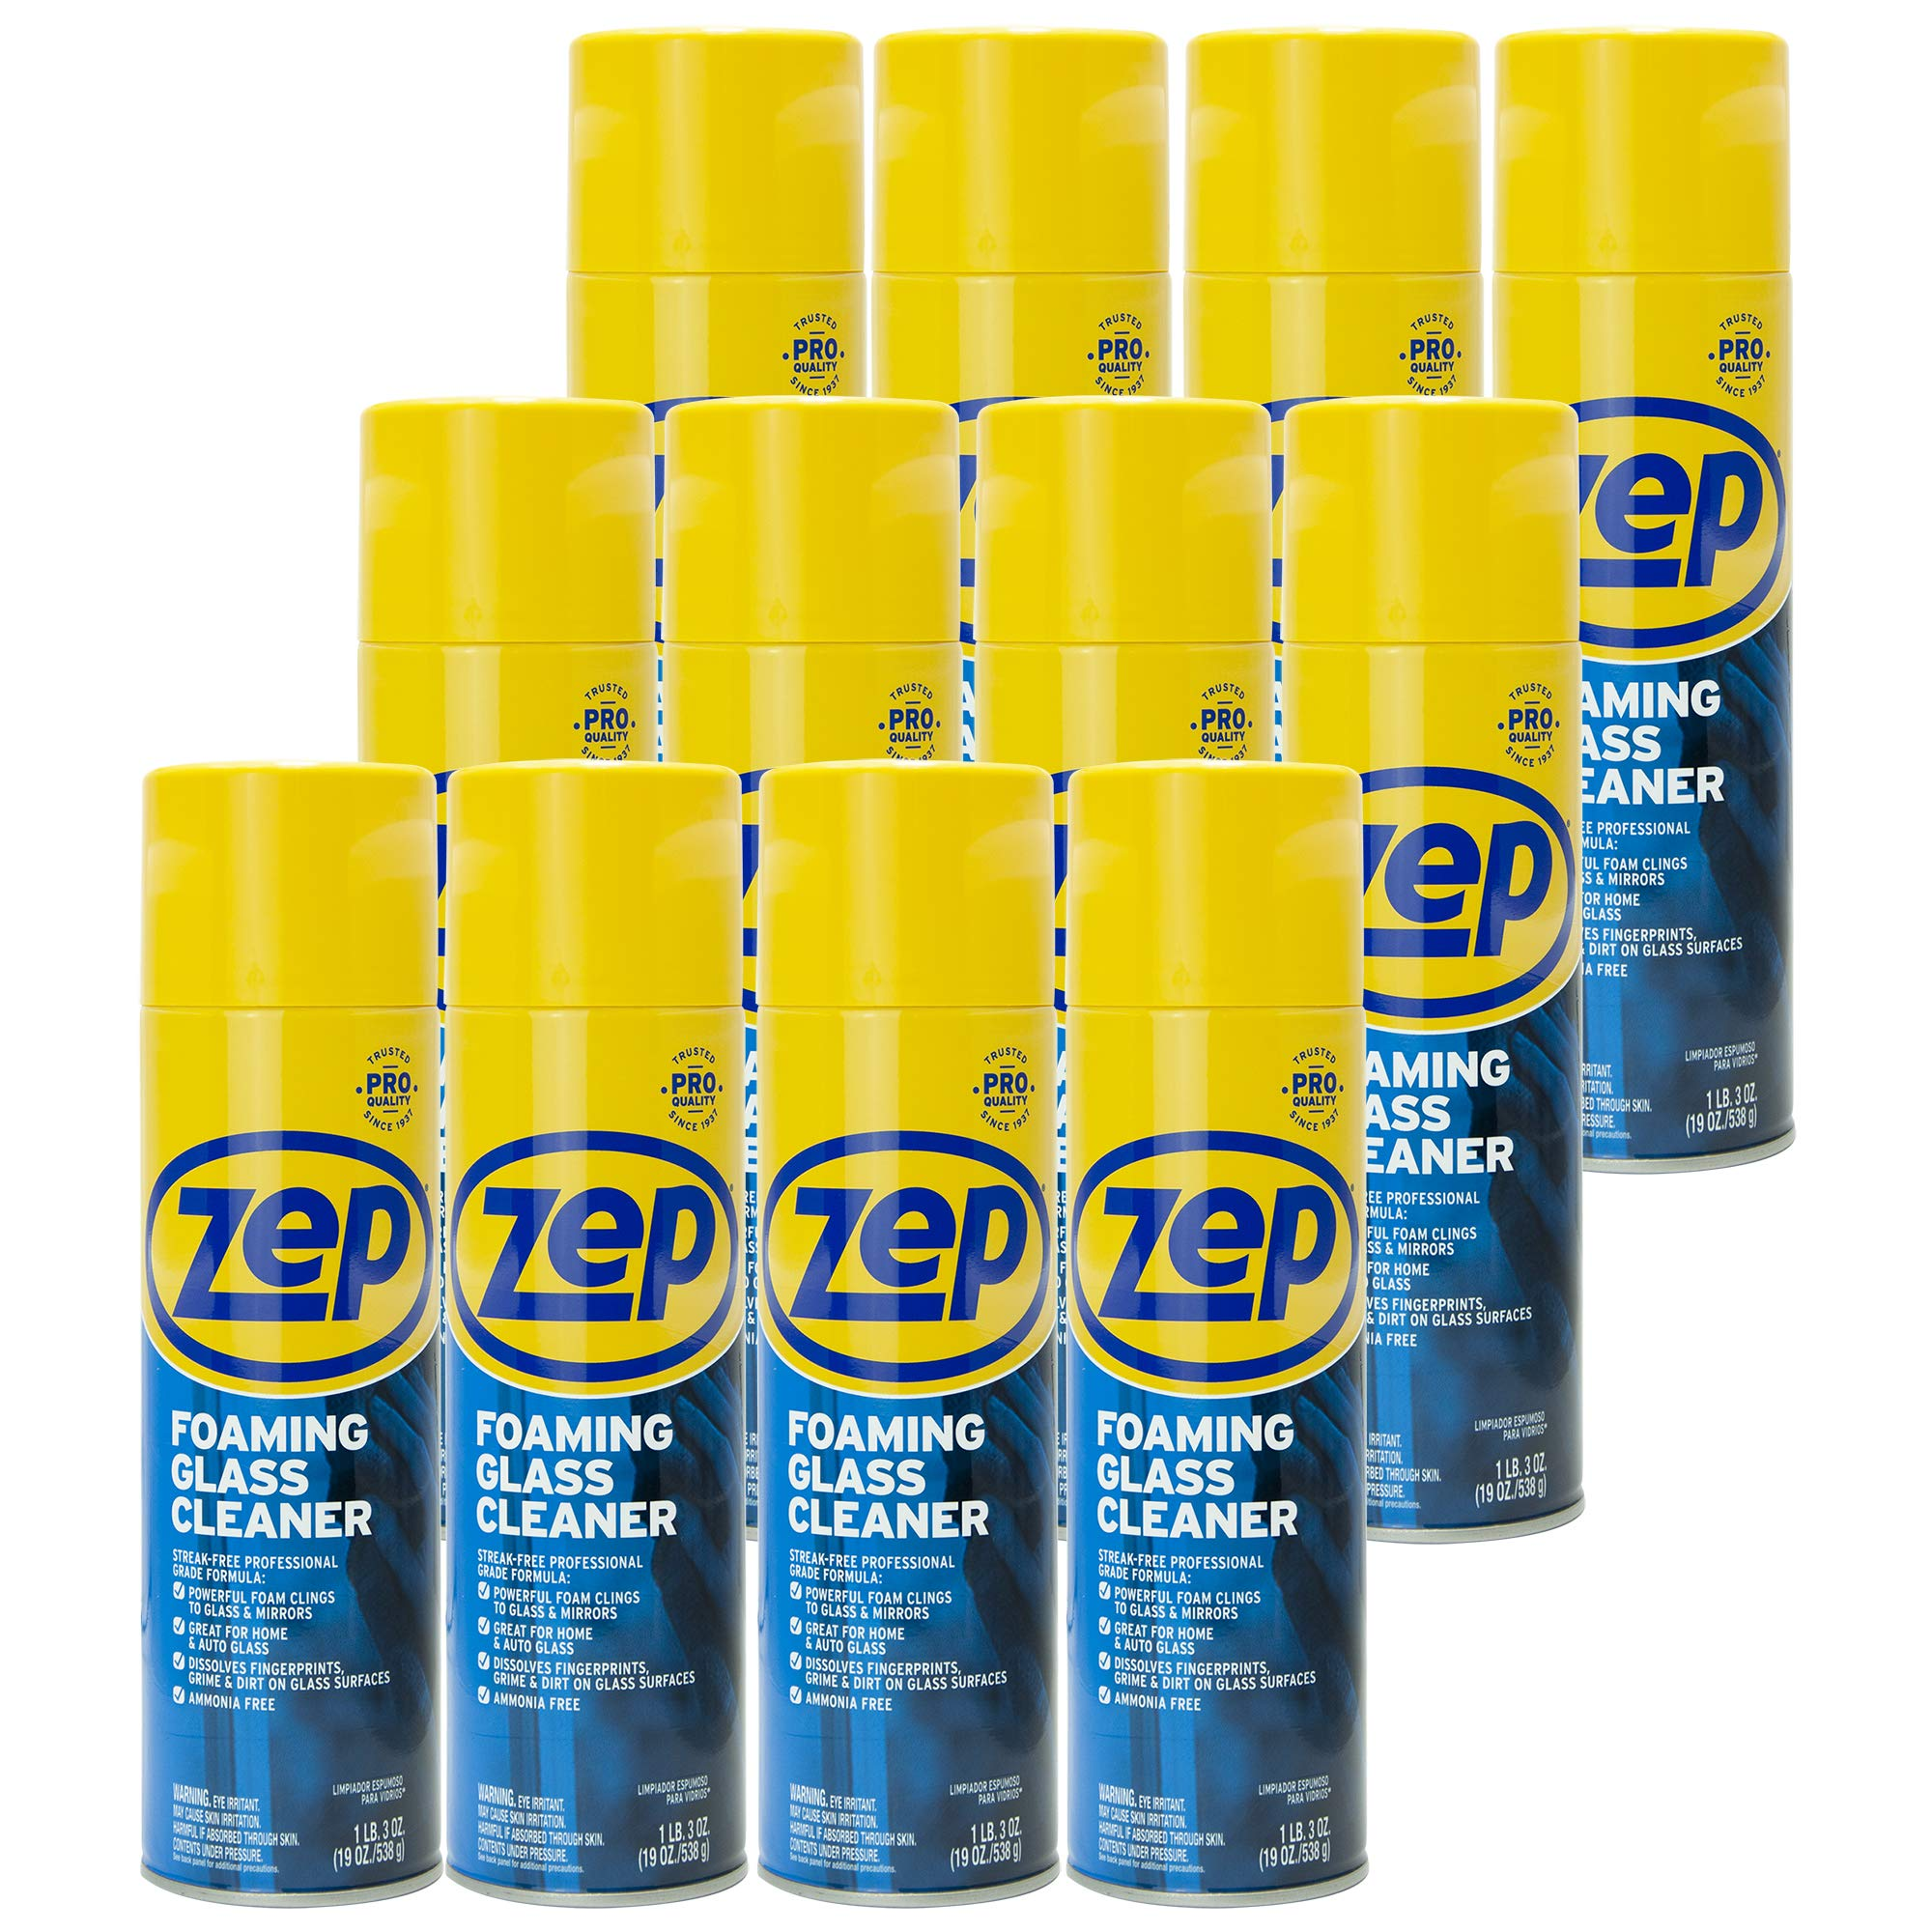 Zep Foaming Glass Cleaner 19 ounce ZUFGC19 (case of 12)